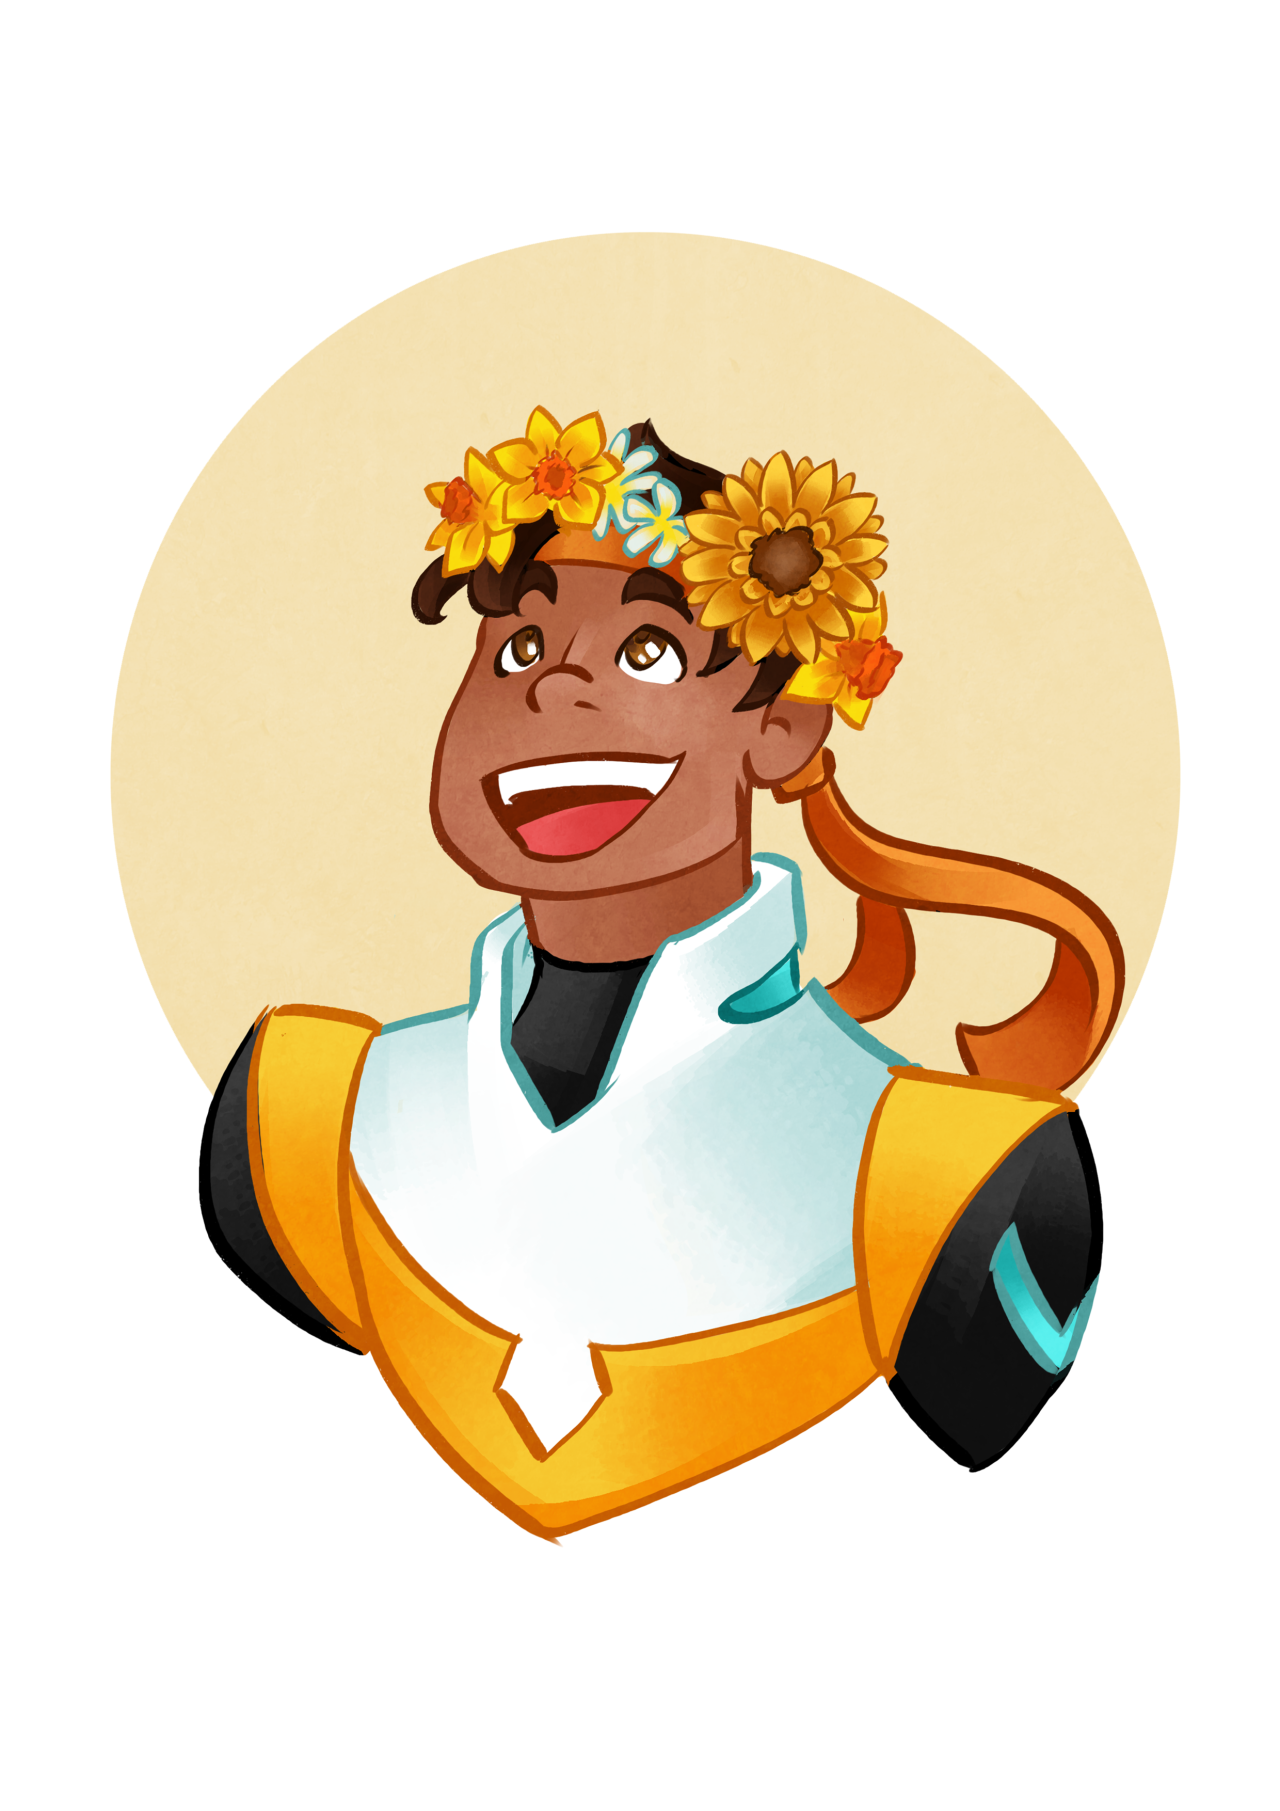 Voltron Characters With Flower Crowns Hunk Voltron Legendary